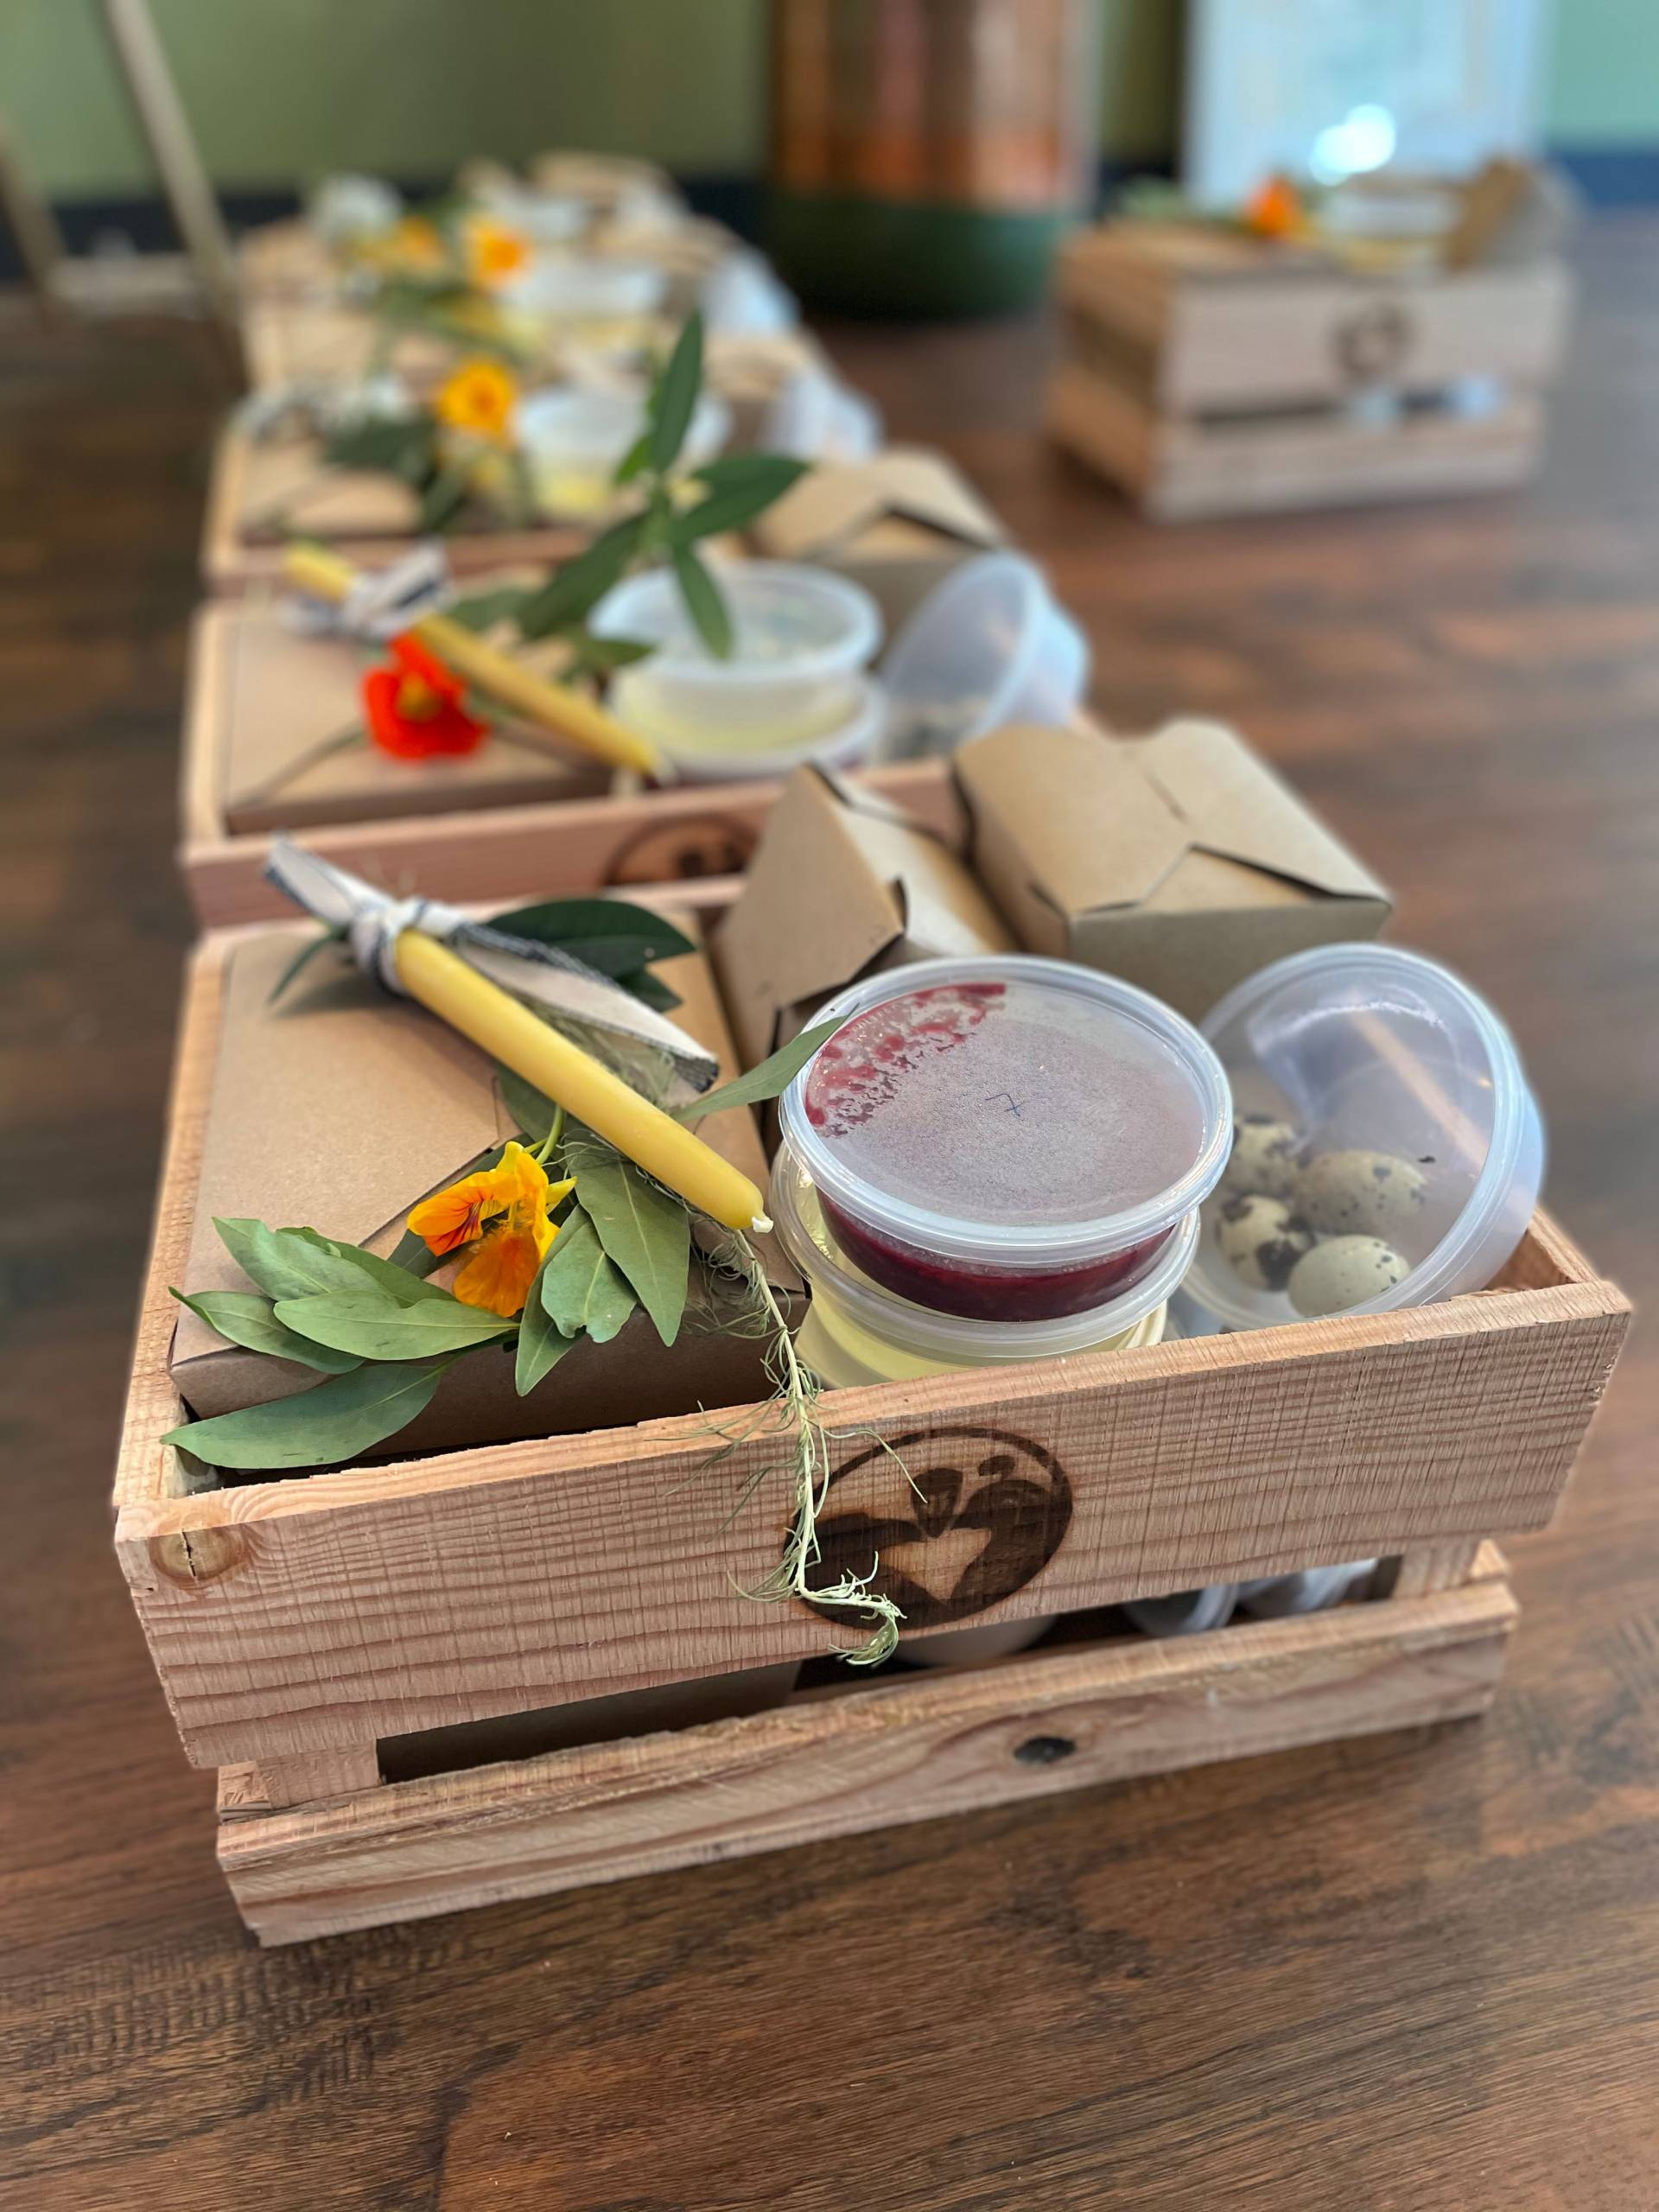 One of Cafe Ohlone's meal kits, packaged in a handmade wooden box, with fresh flowers and tubs of ingredients visible.